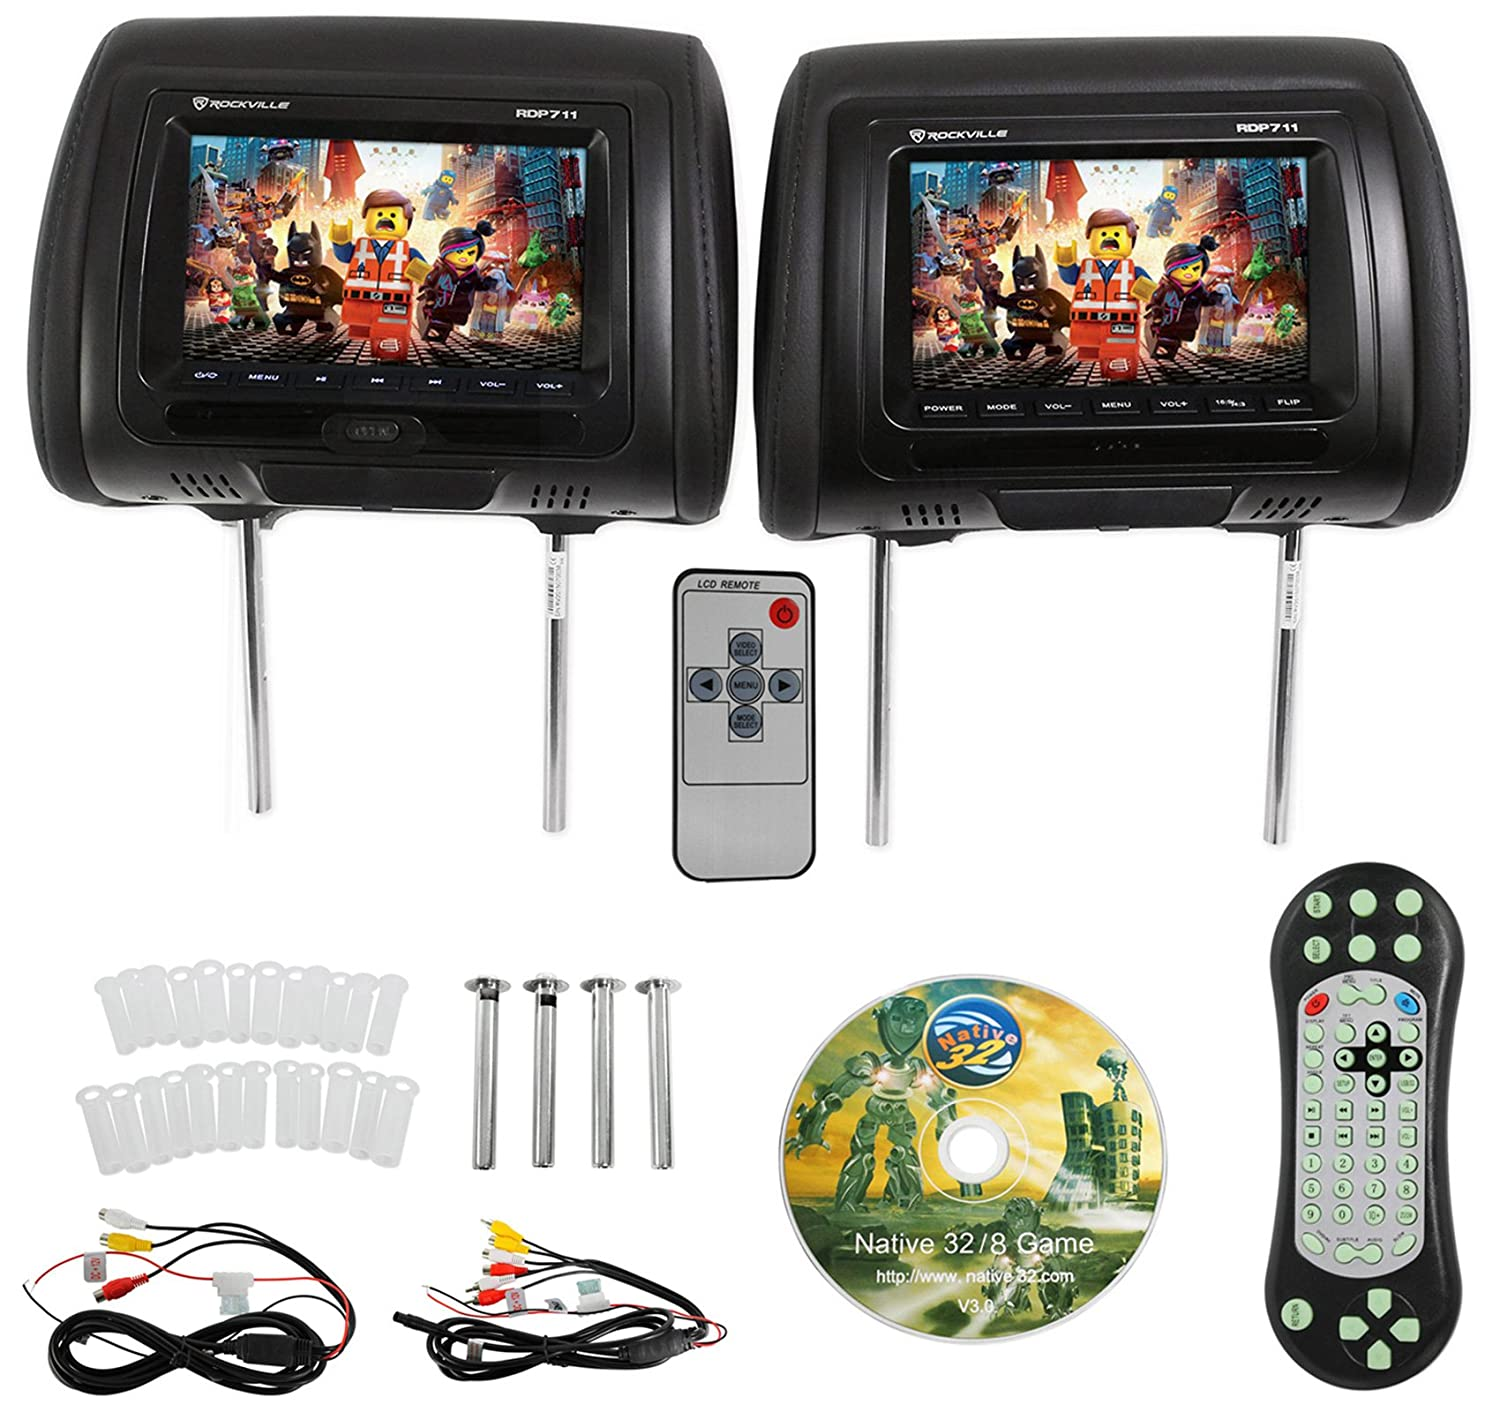 Rockville Rdp711 Bk 7 Black Car Headrest Monitors W Dvd 2010 Chevy Malibu Wiring Diagram Player Usb Hdmi Games Cell Phones Accessories